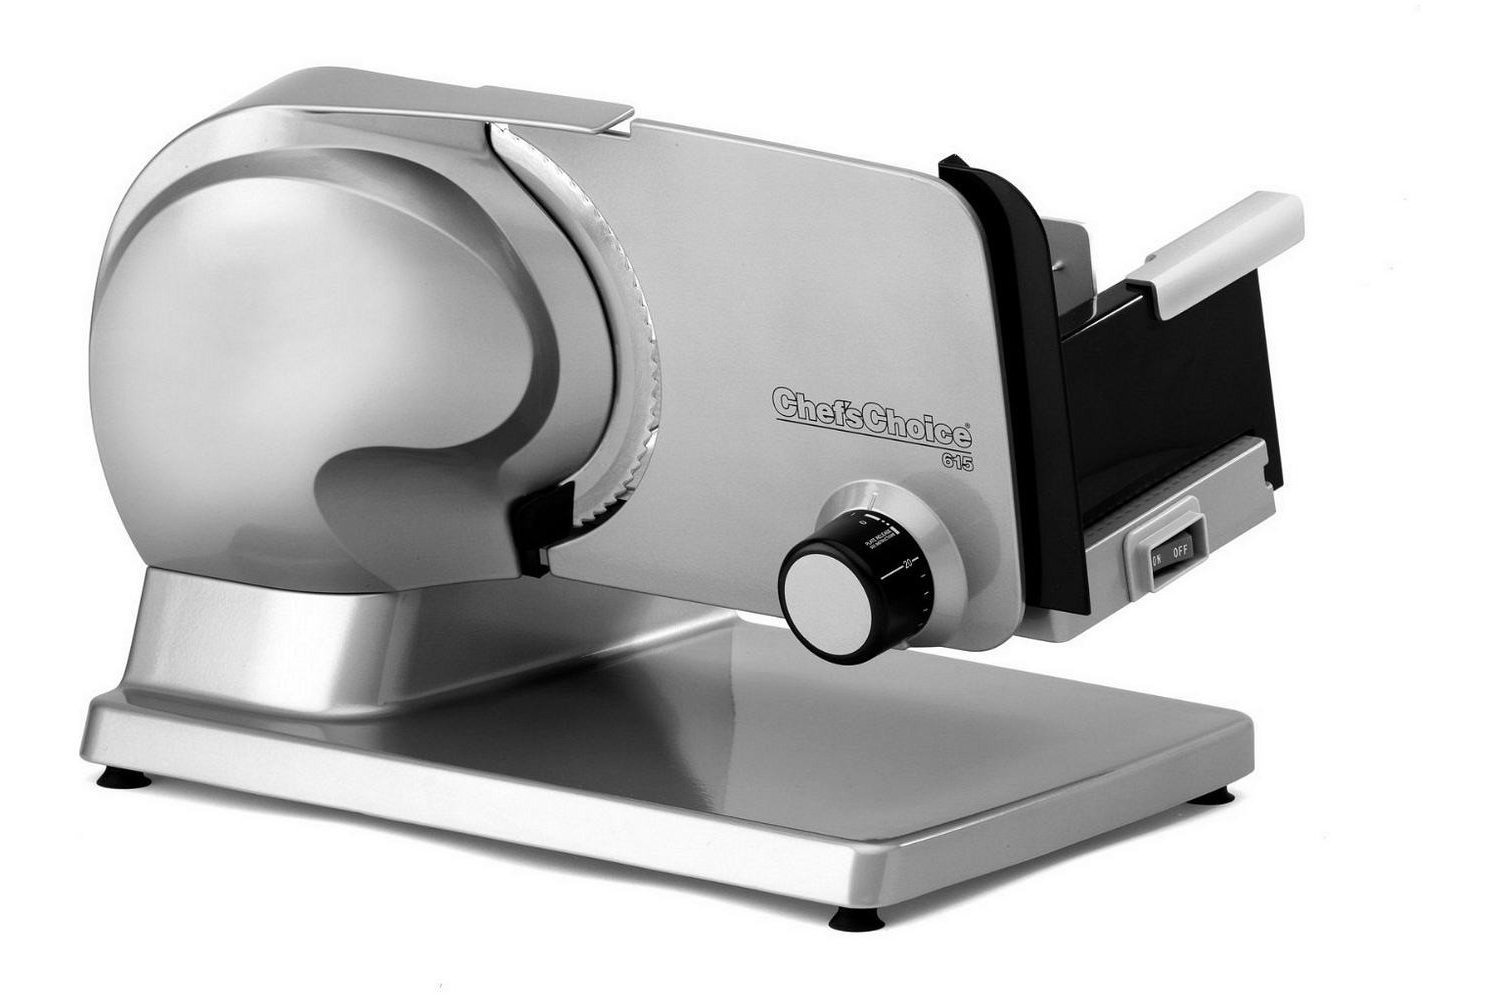 Chef'sChoice 615A Electric Food Slicer